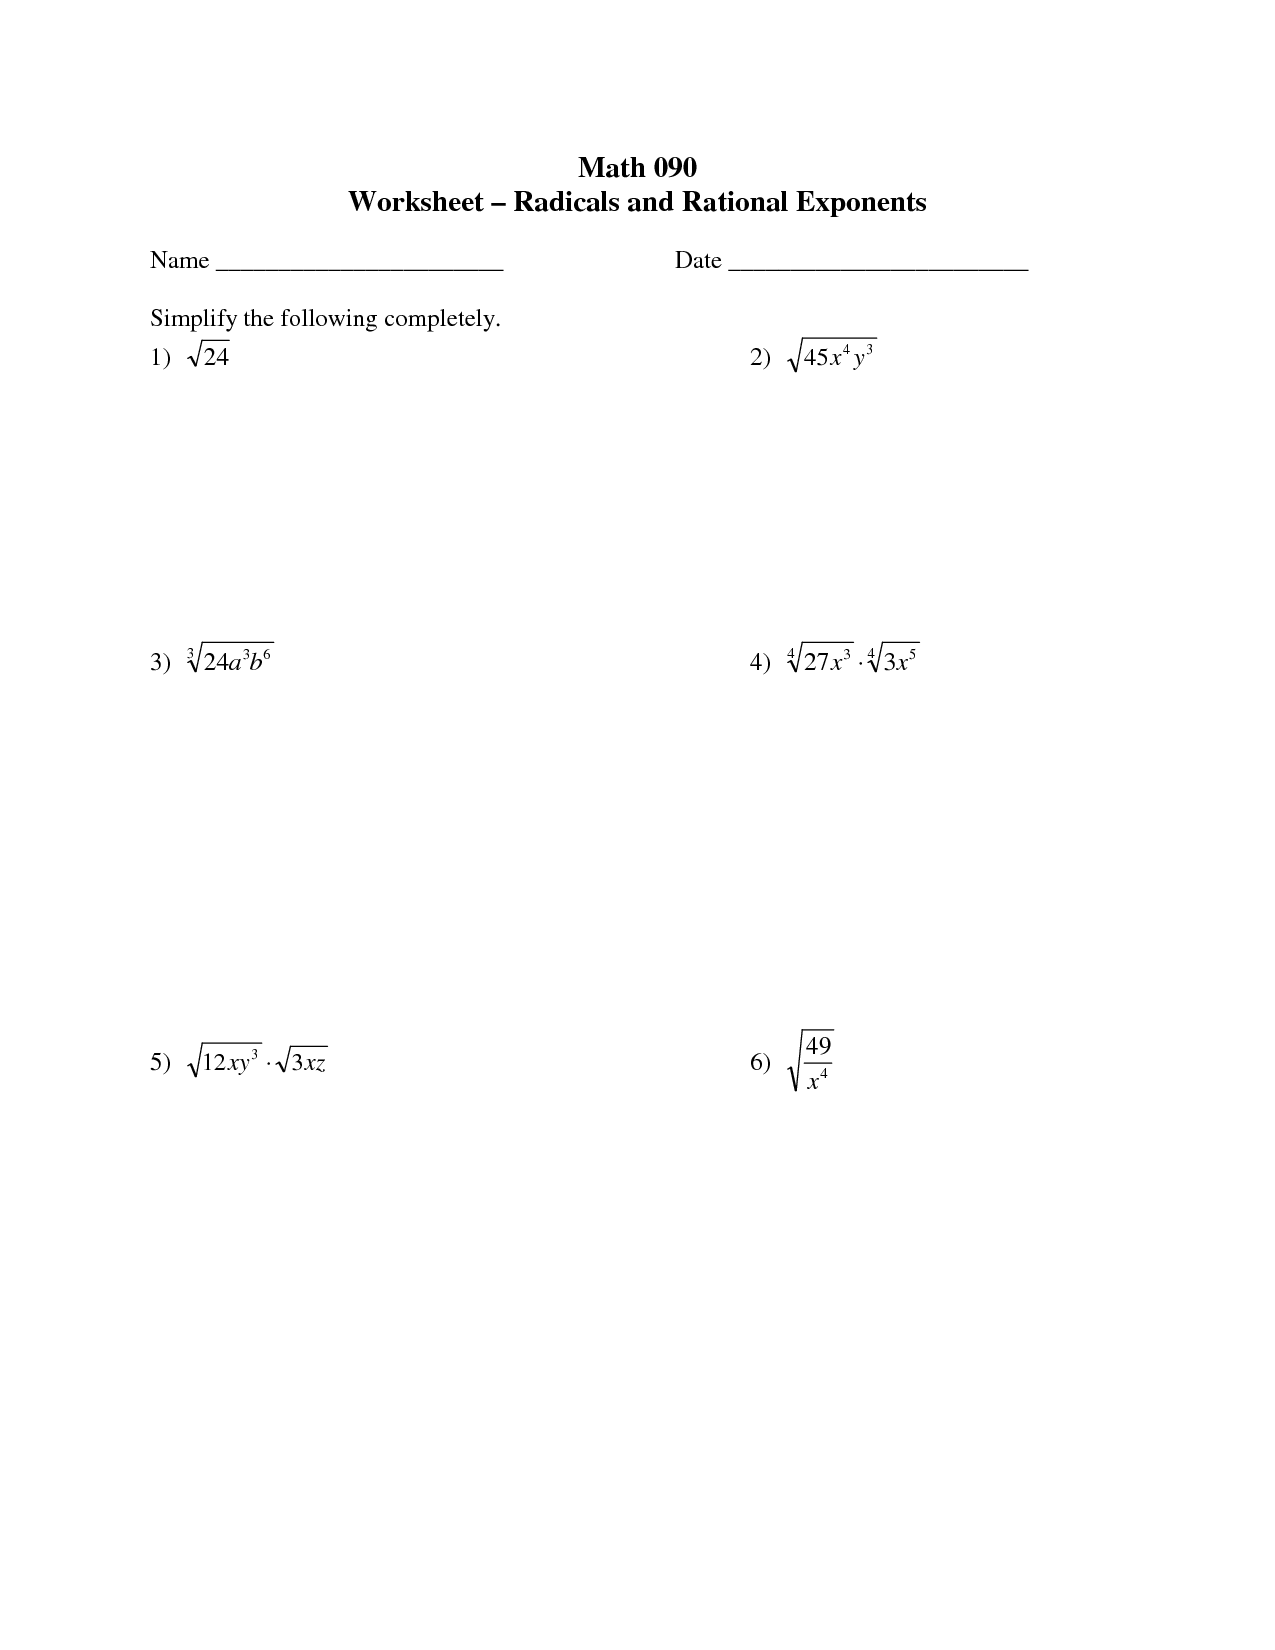 Cubic Radicals Worksheet